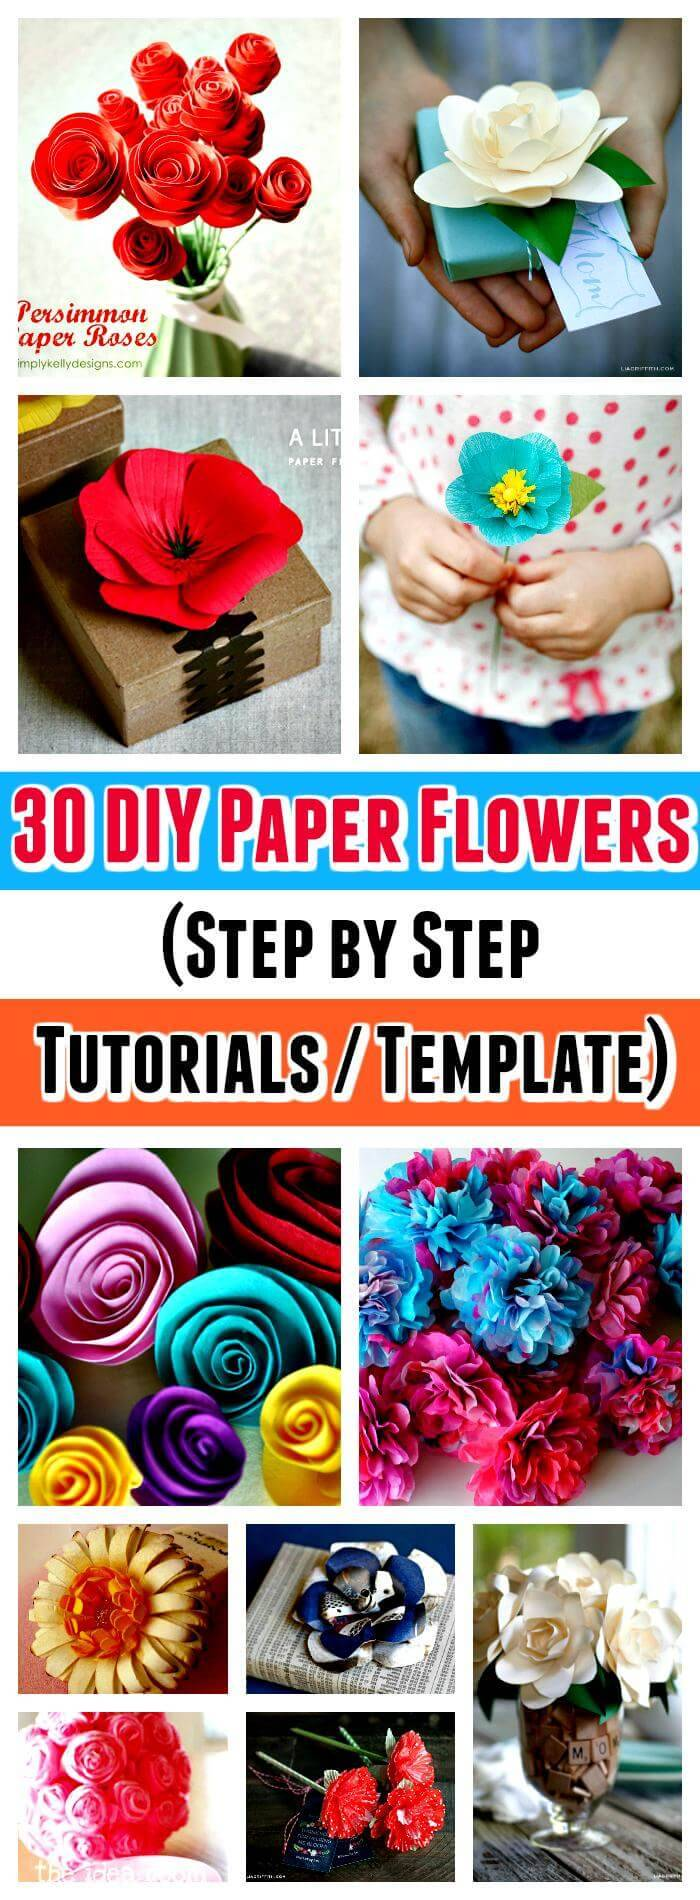 30 diy paper flowers step by step tutorials template diy crafts diy paper flowers mightylinksfo